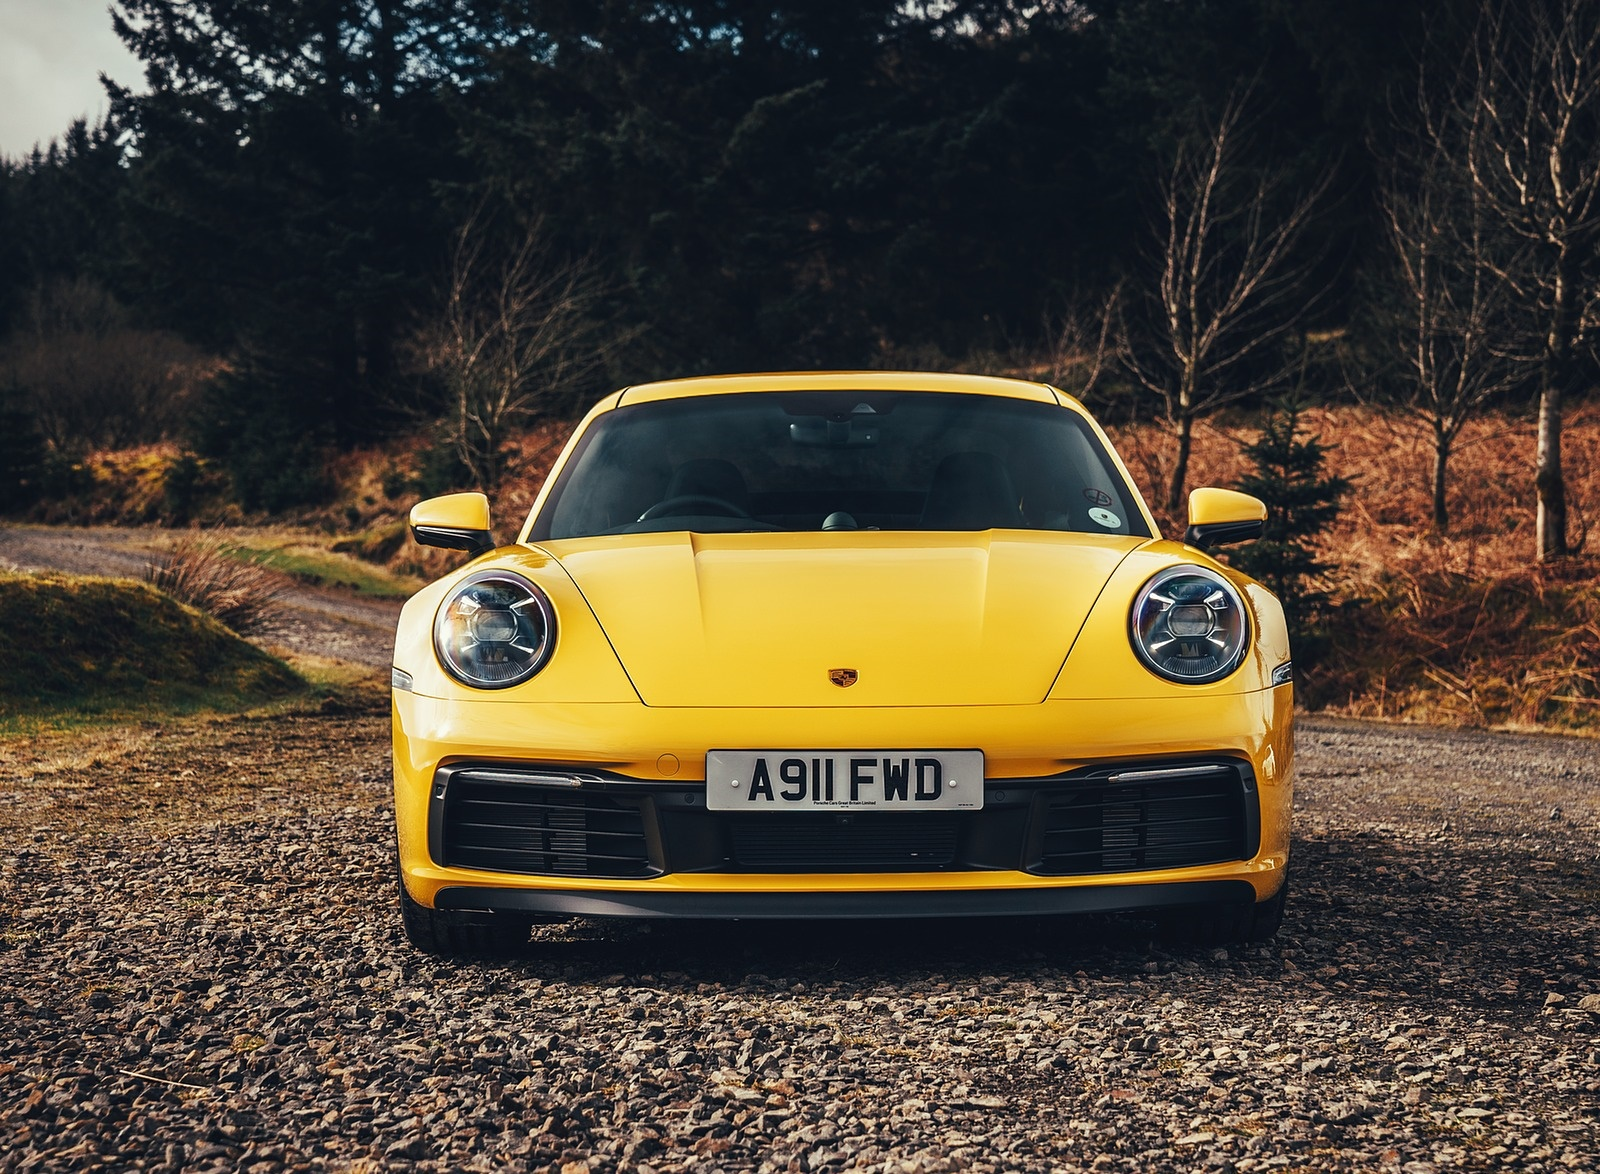 2019 Porsche 911 (992) Carrera 4S (UK-Spec) Front Wallpaper (15)